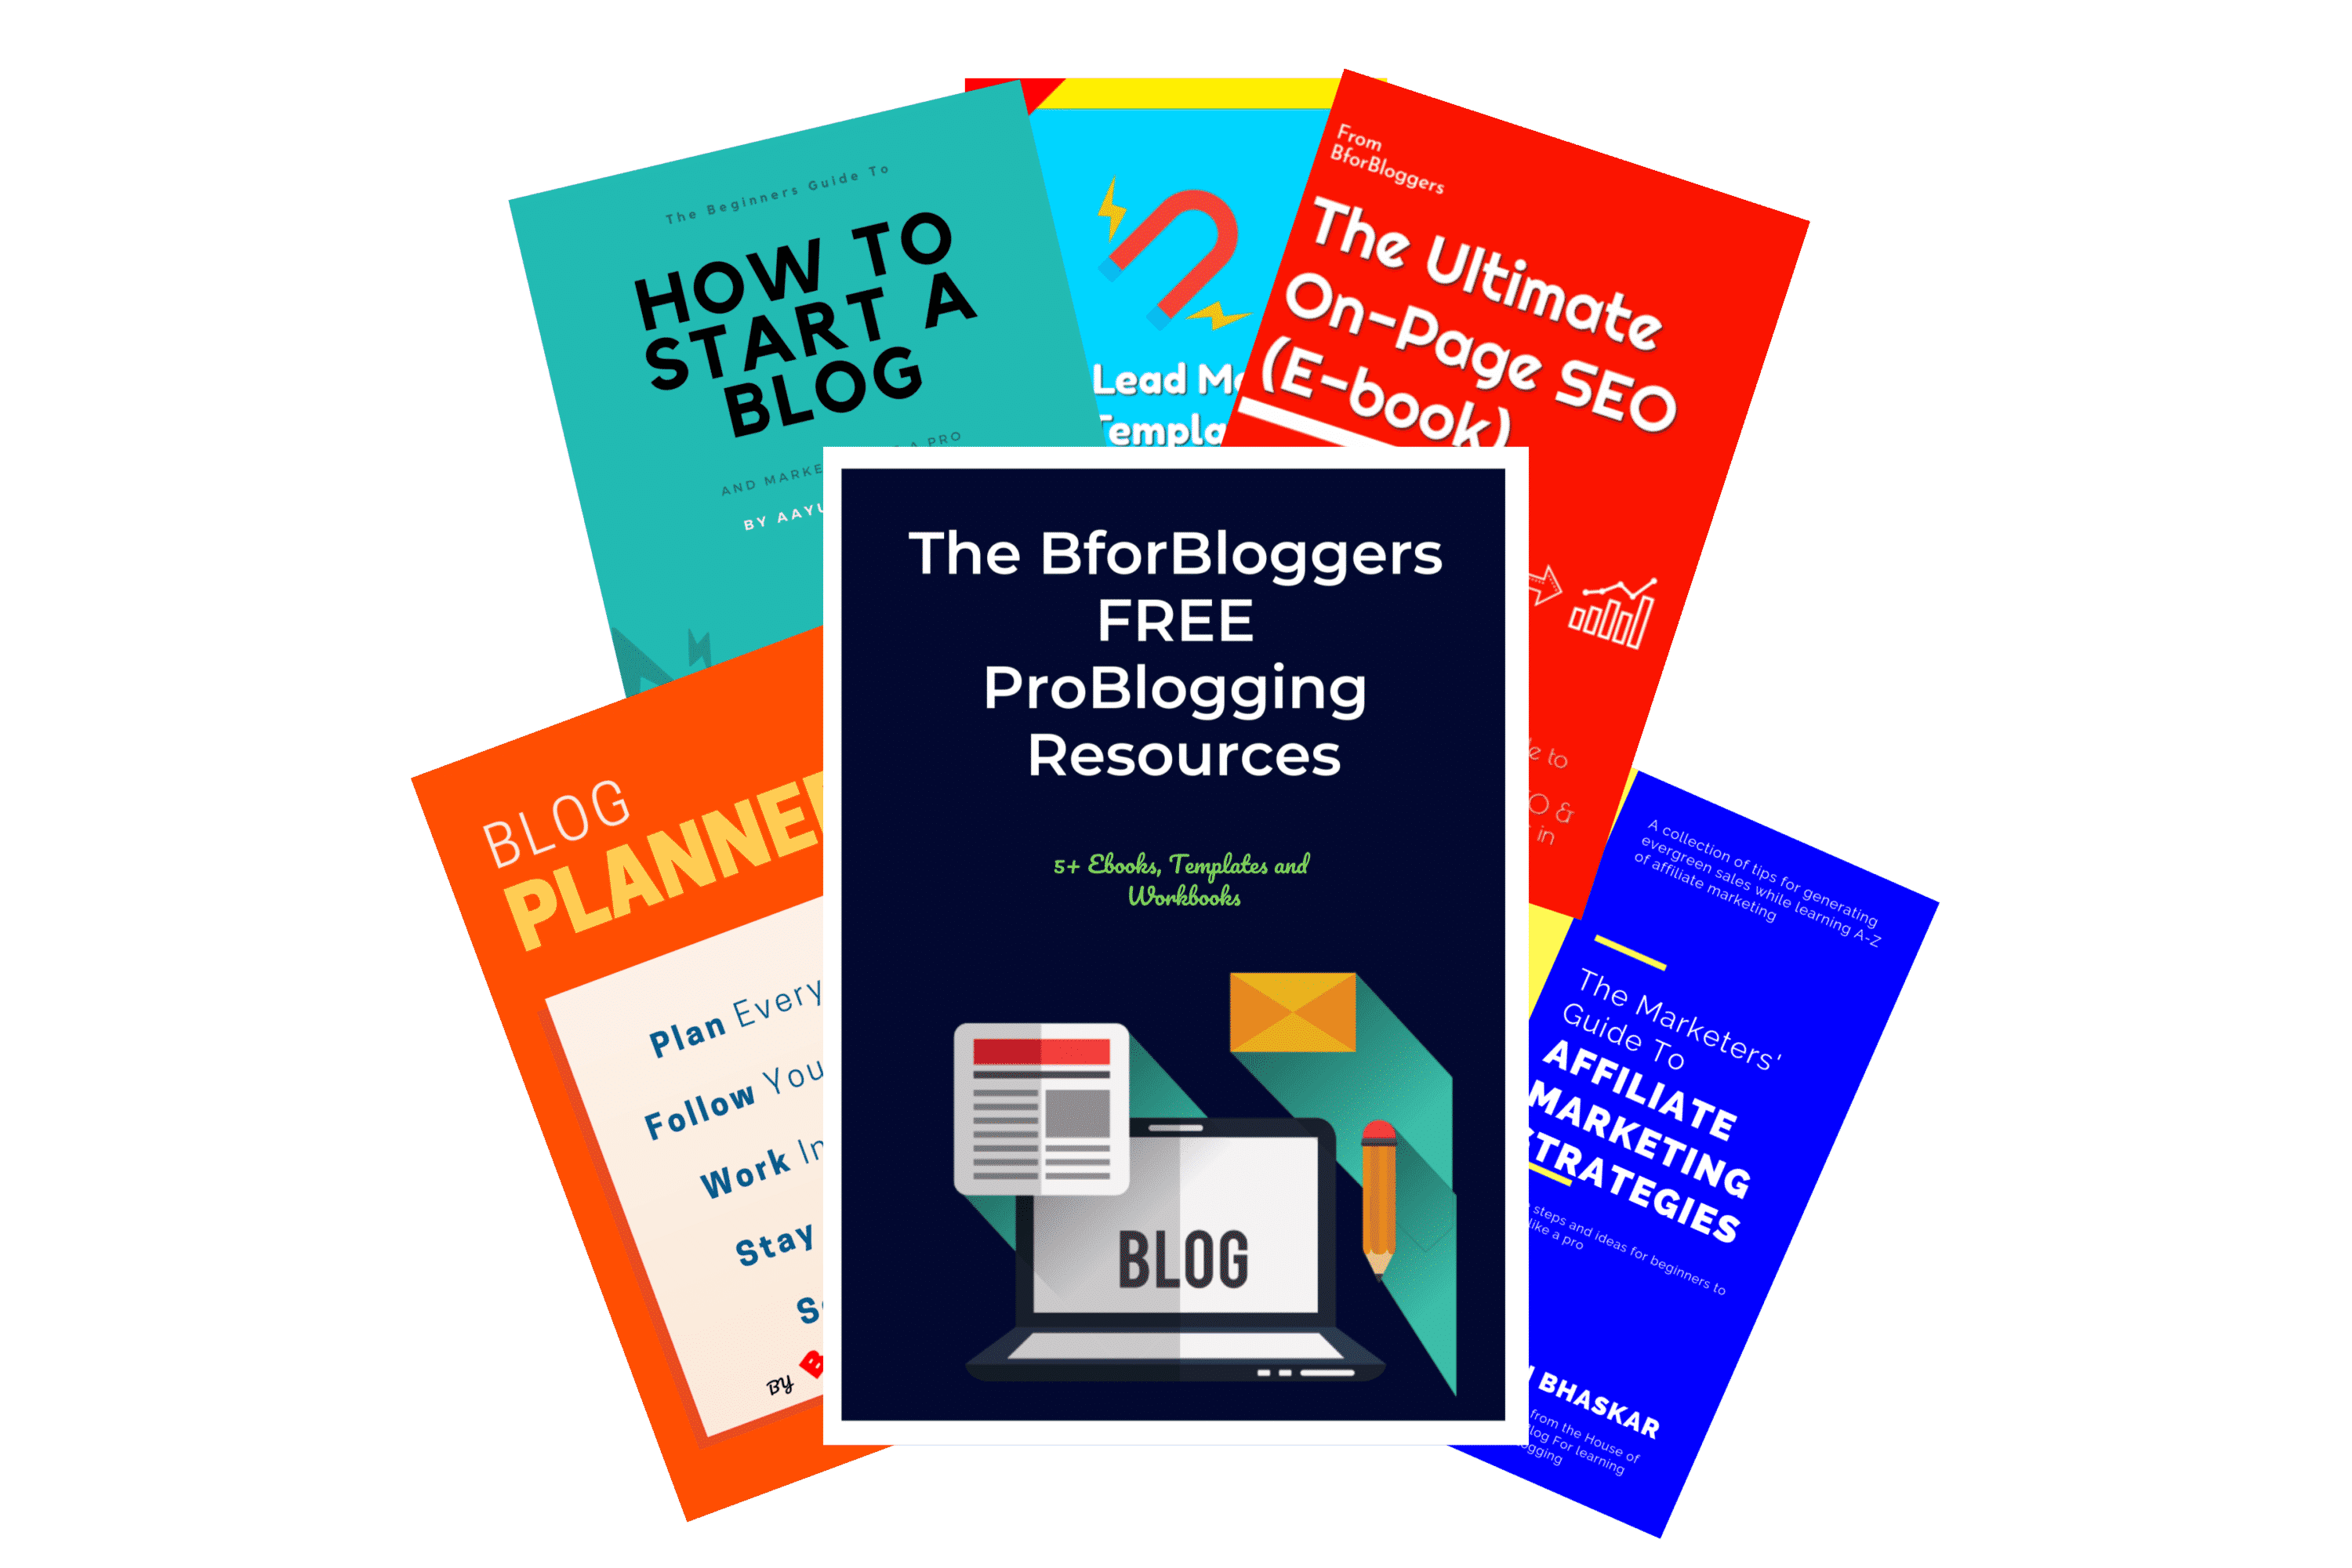 bforbloggers resources